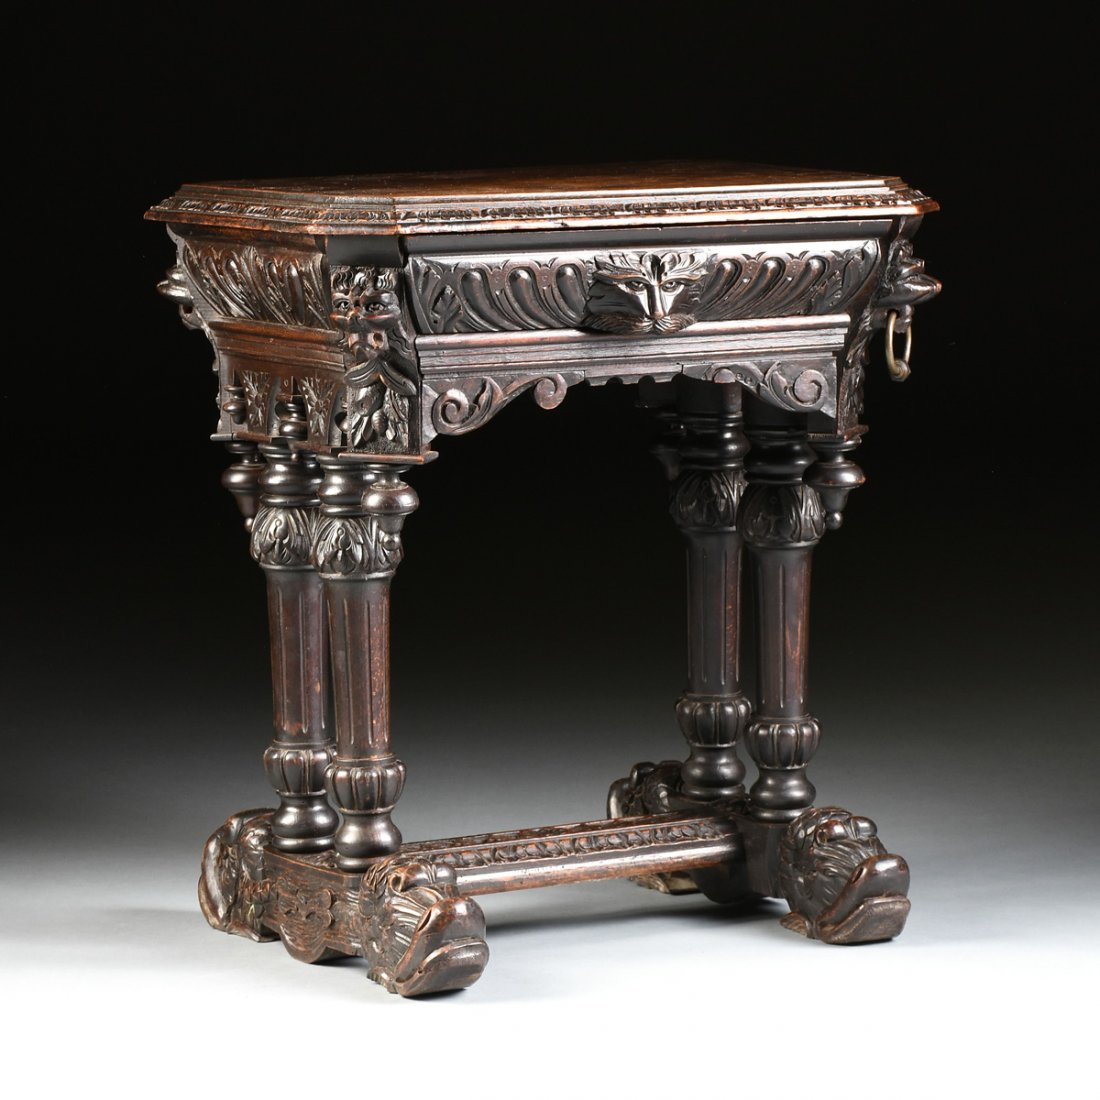 A RENAISSANCE REVIVAL CARVED WOOD SIDE TABLE, POSSIBLY